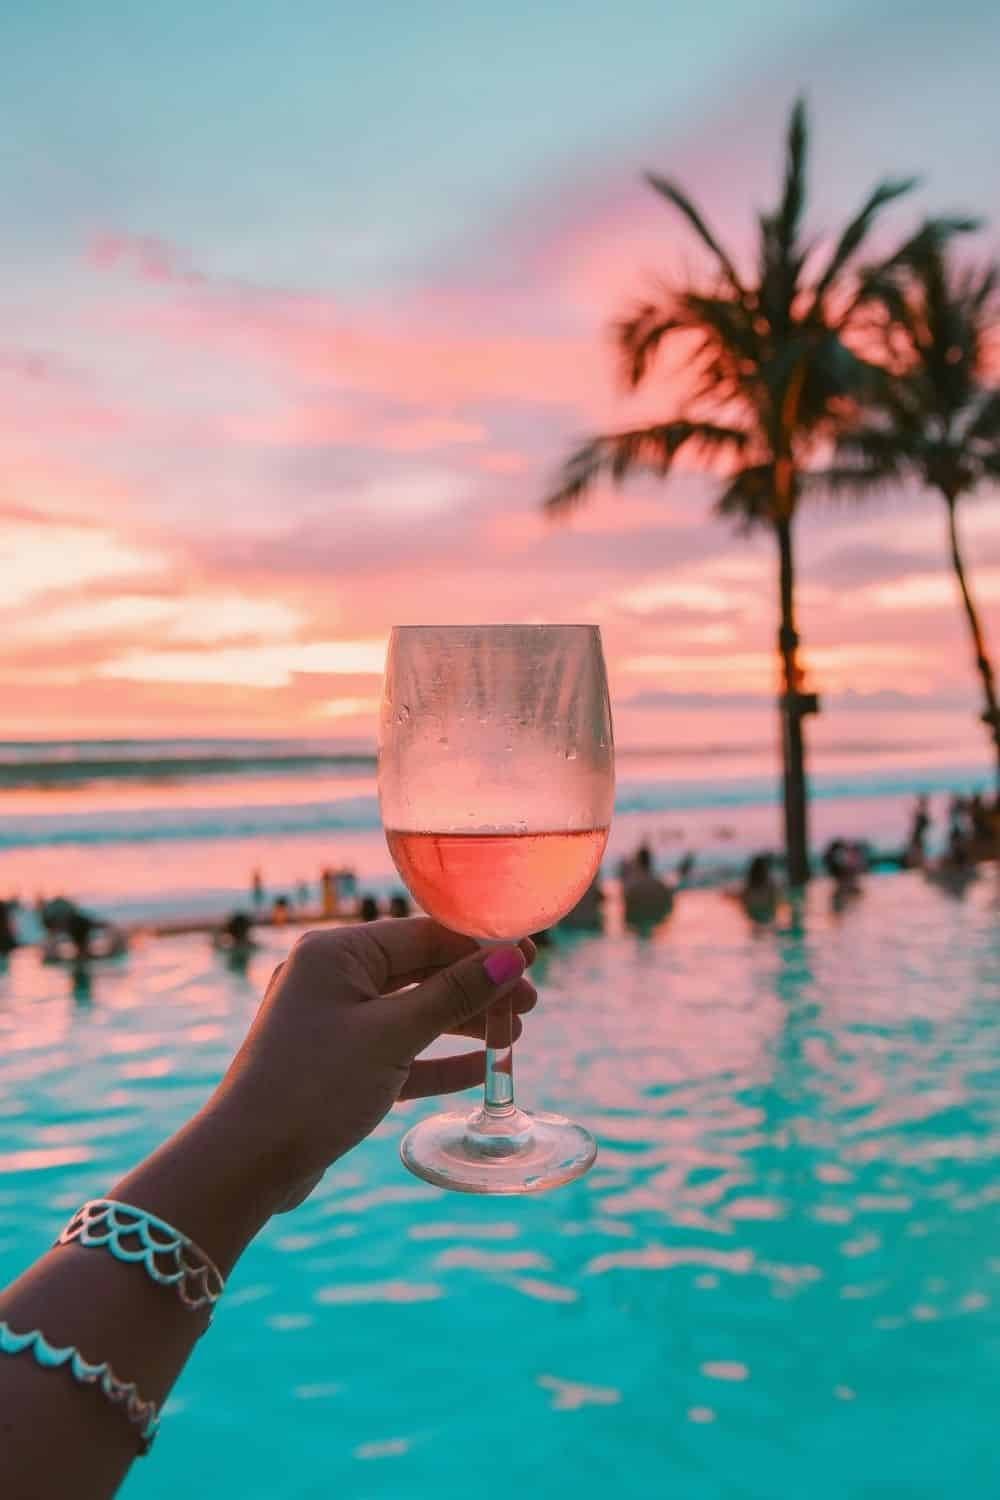 Photo of a woman holding up a glass of rose wine in front of a pool overlooking the Hawaiian shoreline during sunset.